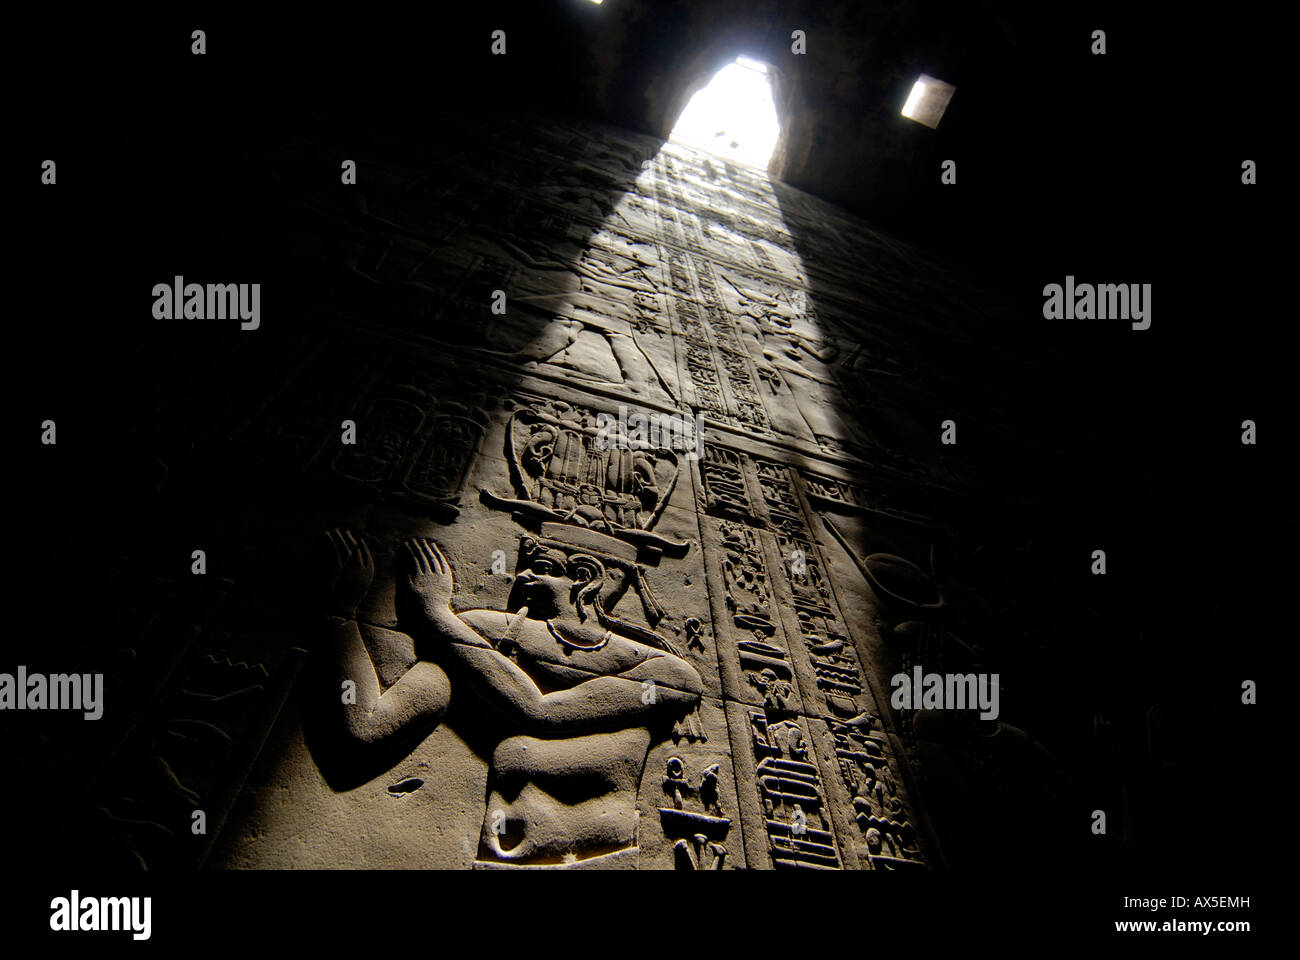 Interior with hieroglyphs, Karnak Temple, Luxor, Egypt, North Africa - Stock Image